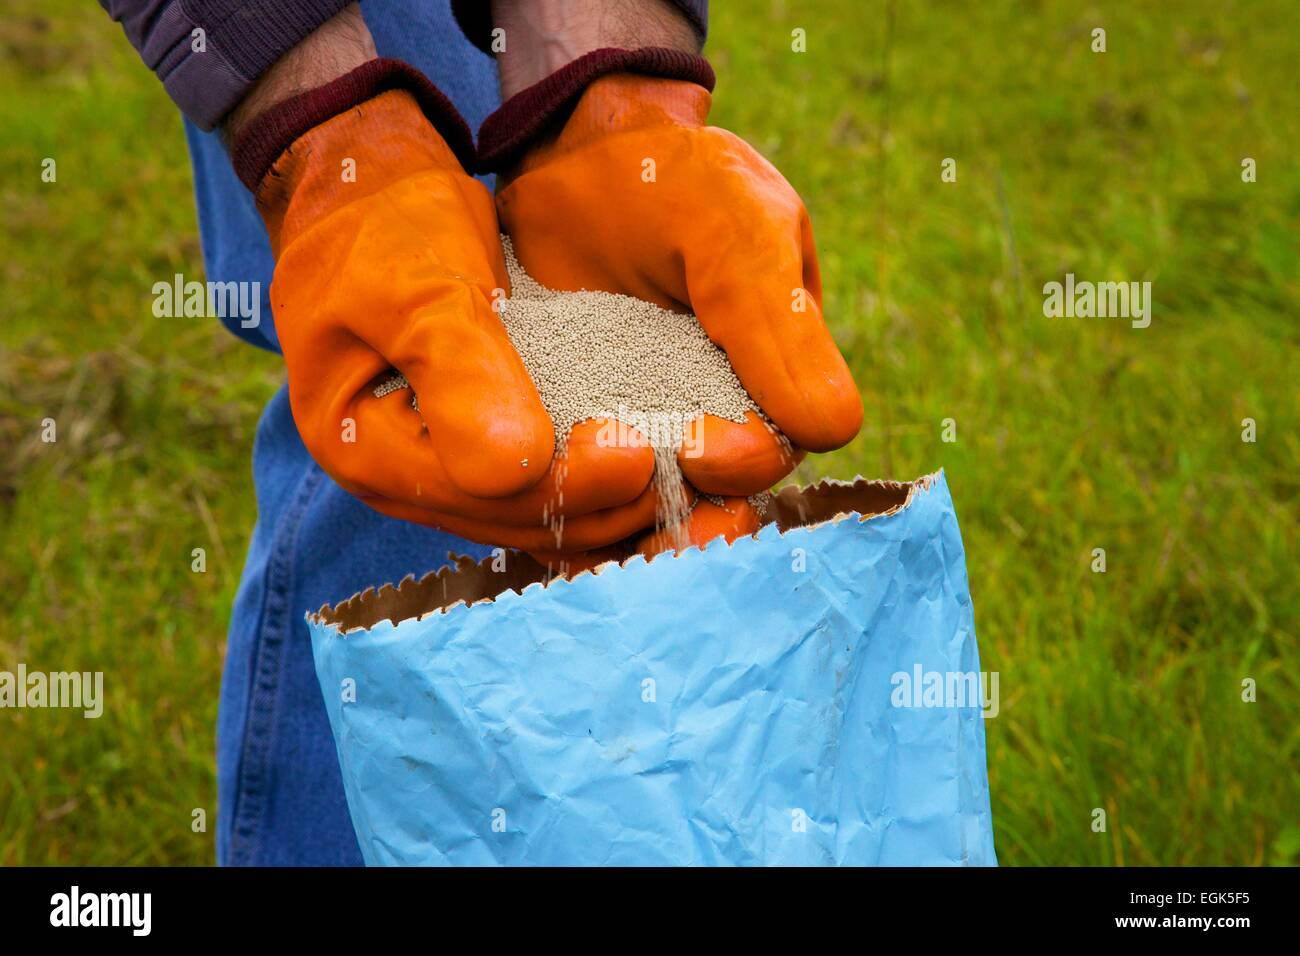 Farmer pouring clover seed through gloved hands into bag. - Stock Image